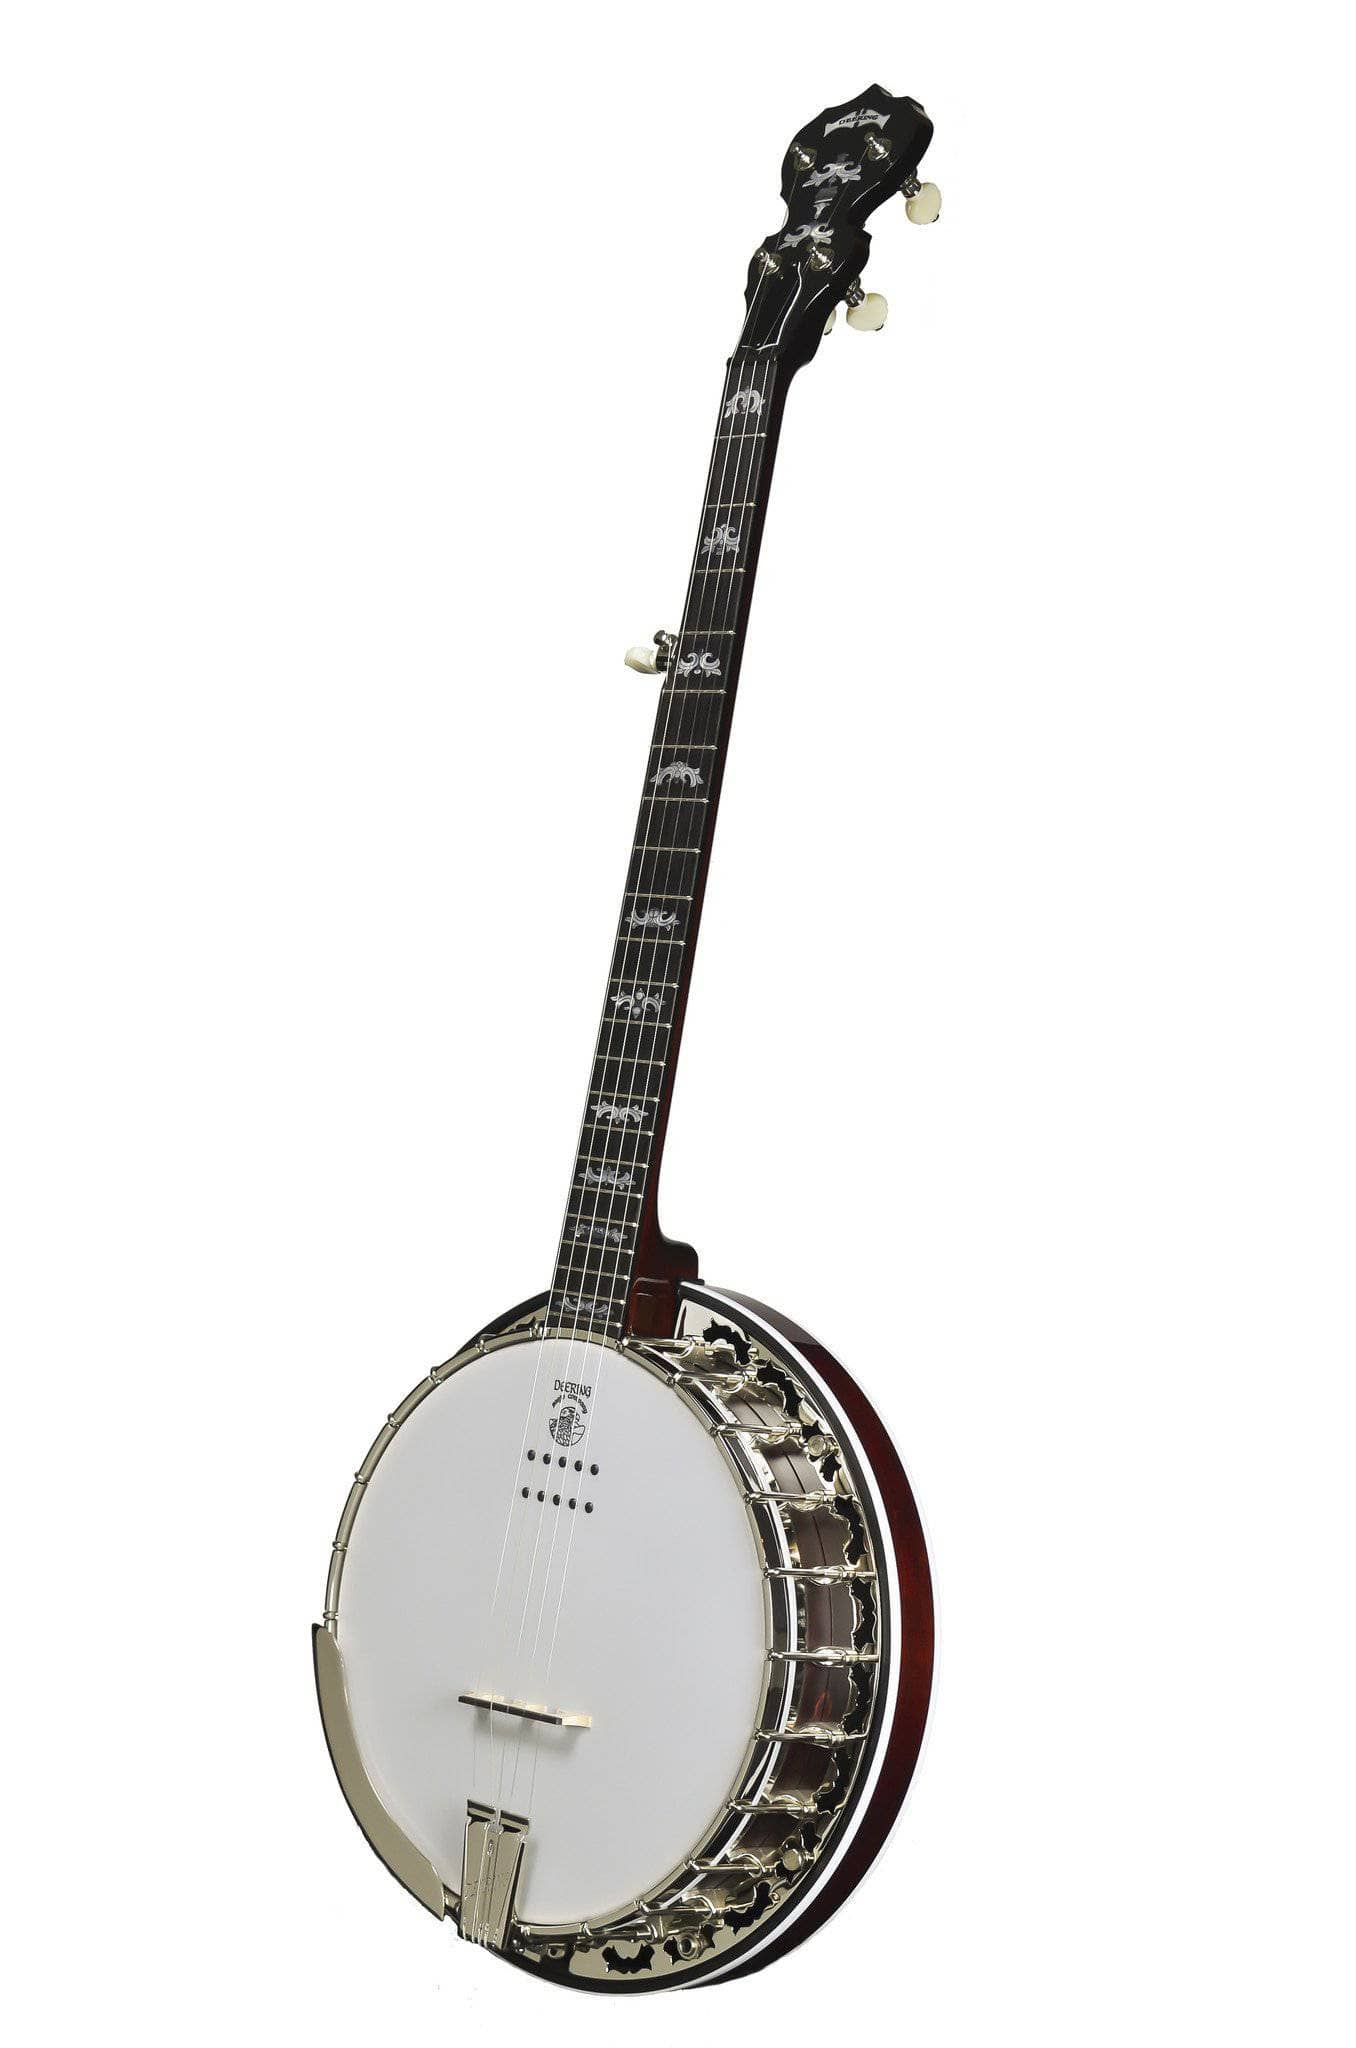 5-String Resonator Banjos